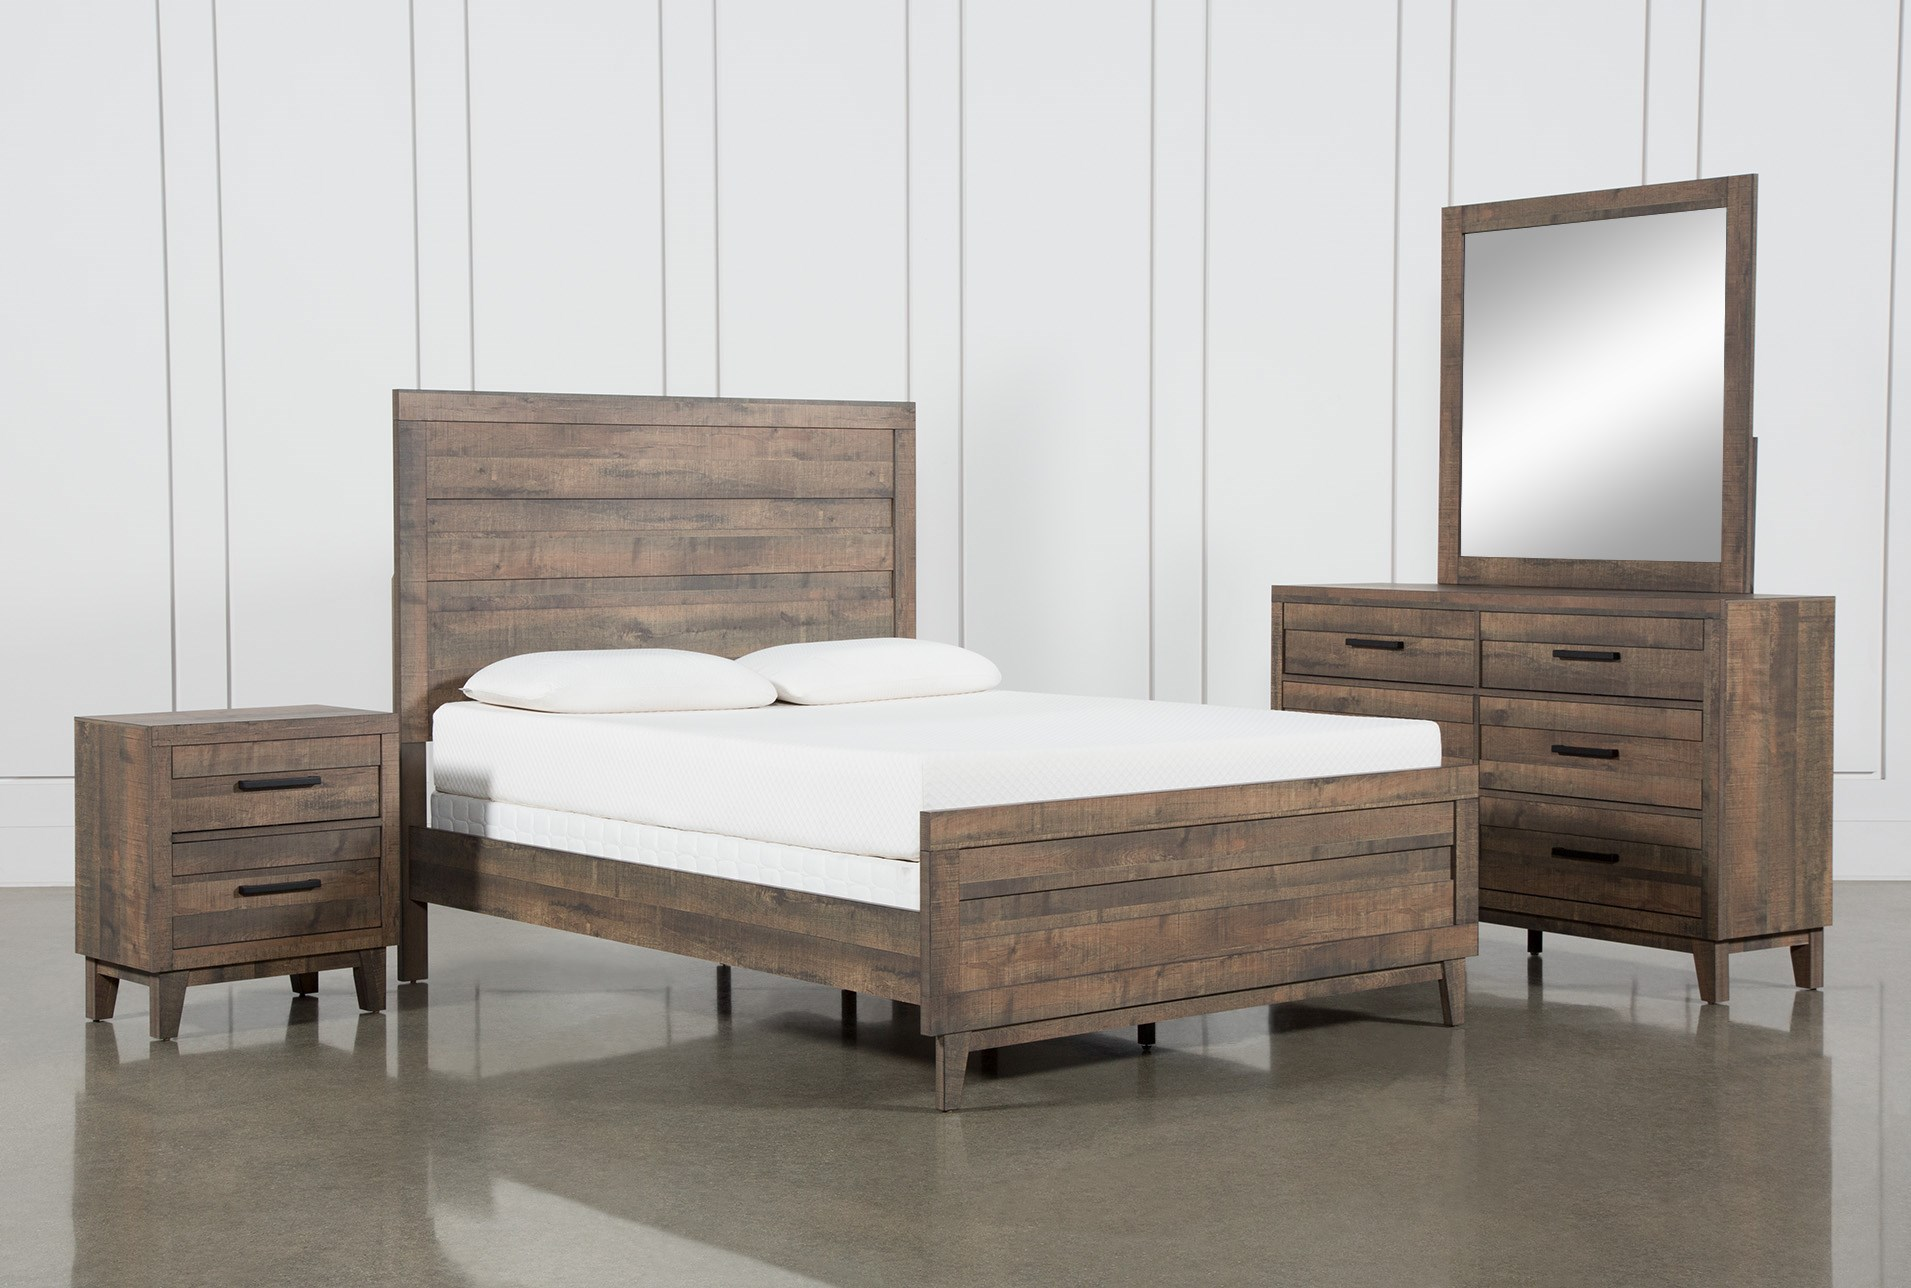 Outstanding Ranier Queen 4 Piece Bedroom Set Home Interior And Landscaping Spoatsignezvosmurscom